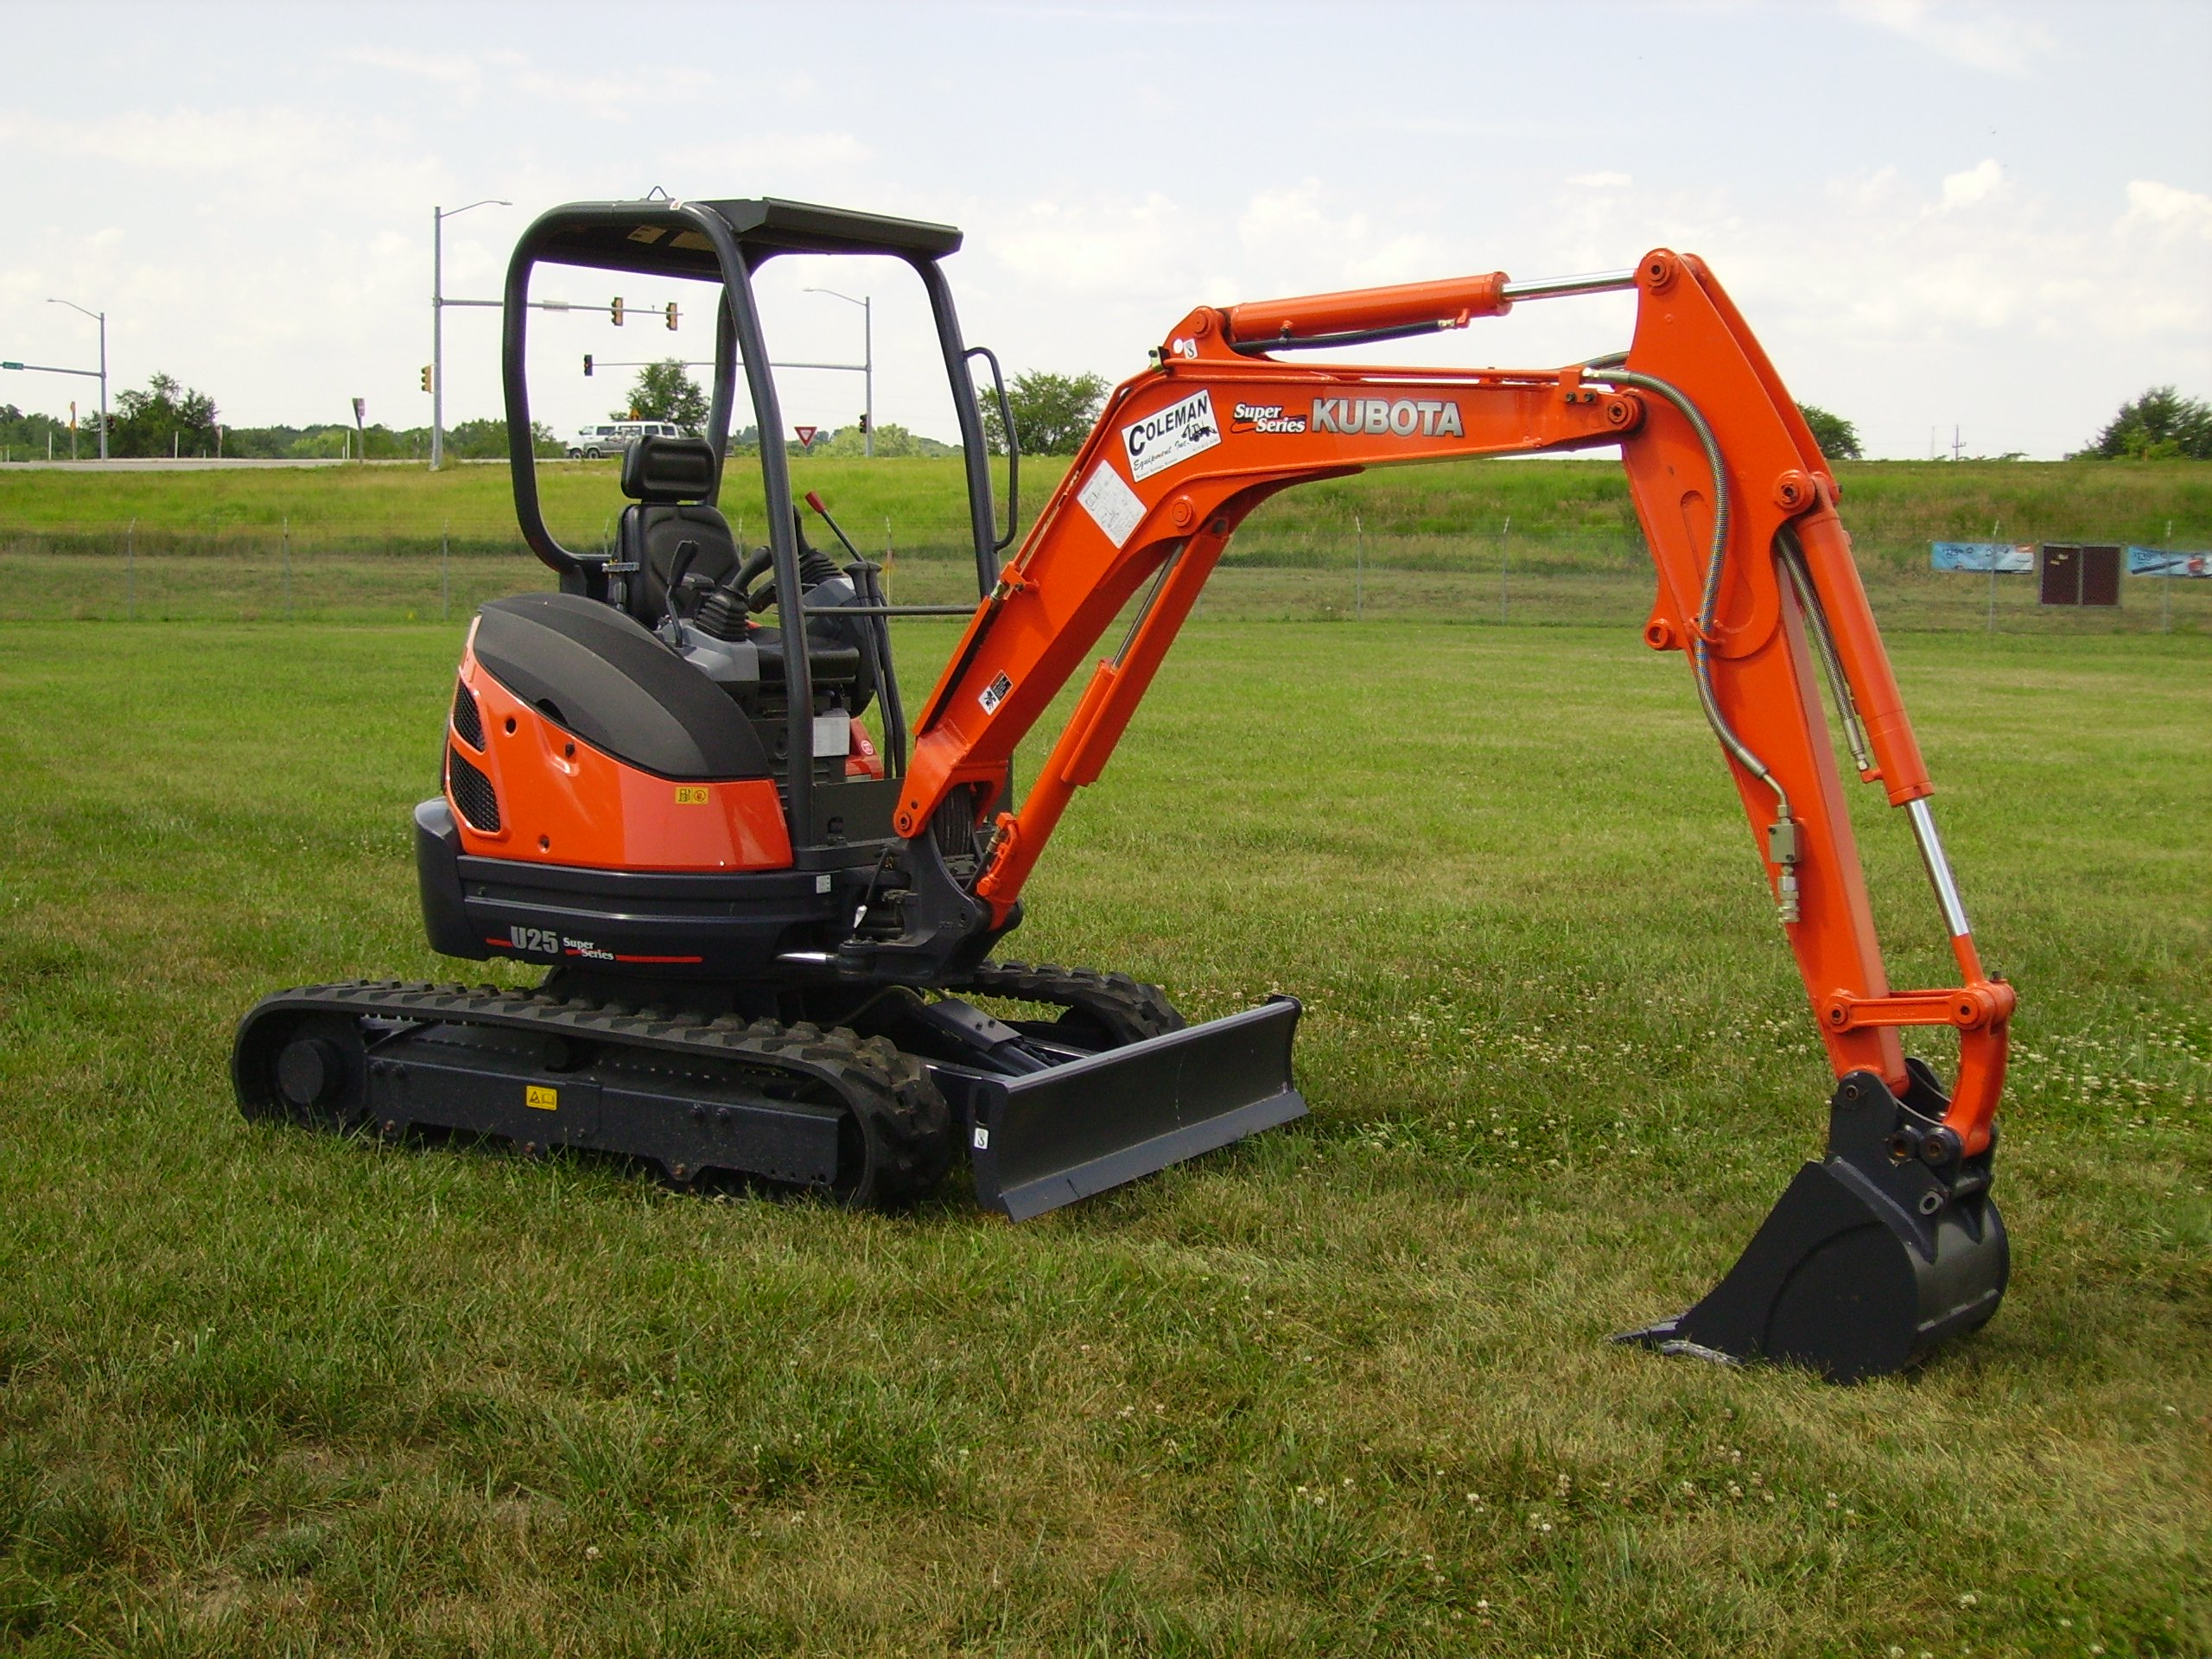 Positive Forecast for Compact Construction Equipment Market